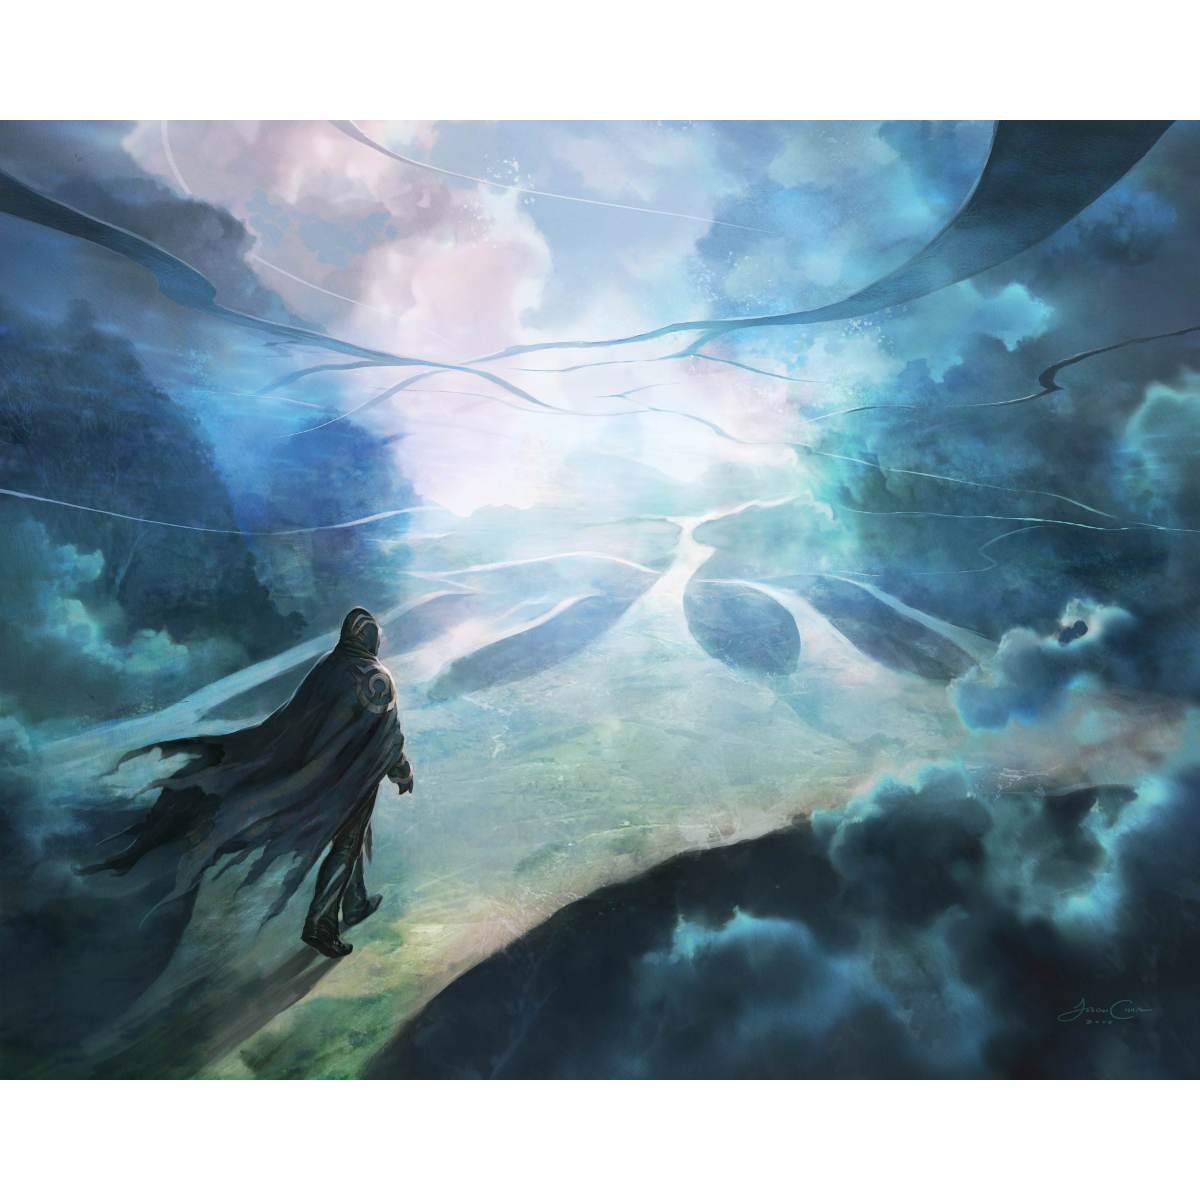 Omniscience Print - Print - Original Magic Art - Accessories for Magic the Gathering and other card games